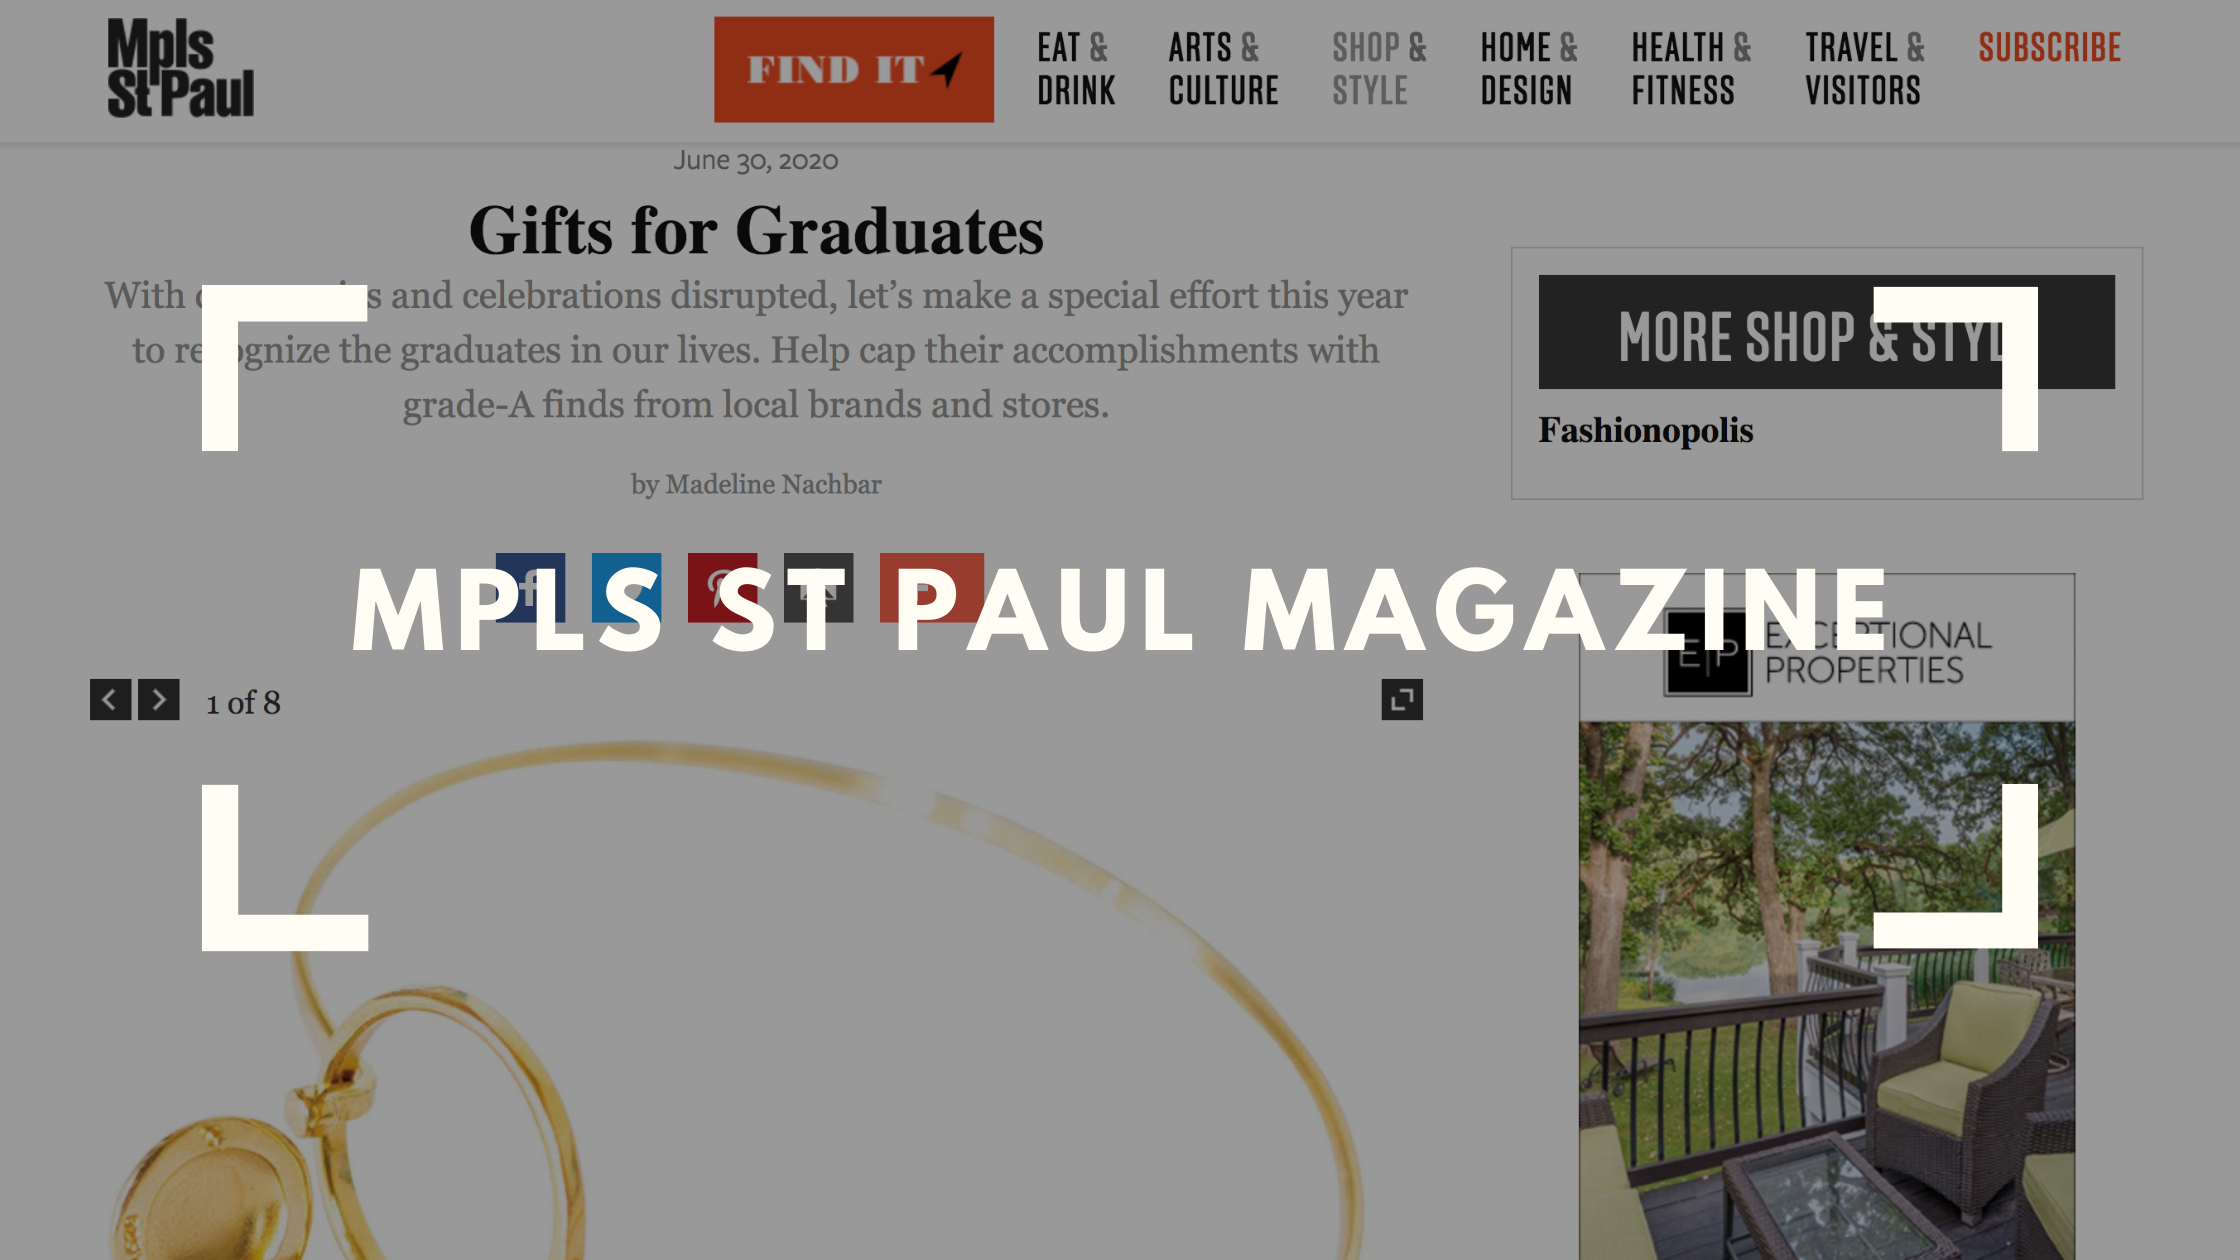 mpls st paul magazine number one recommended gift for graduates